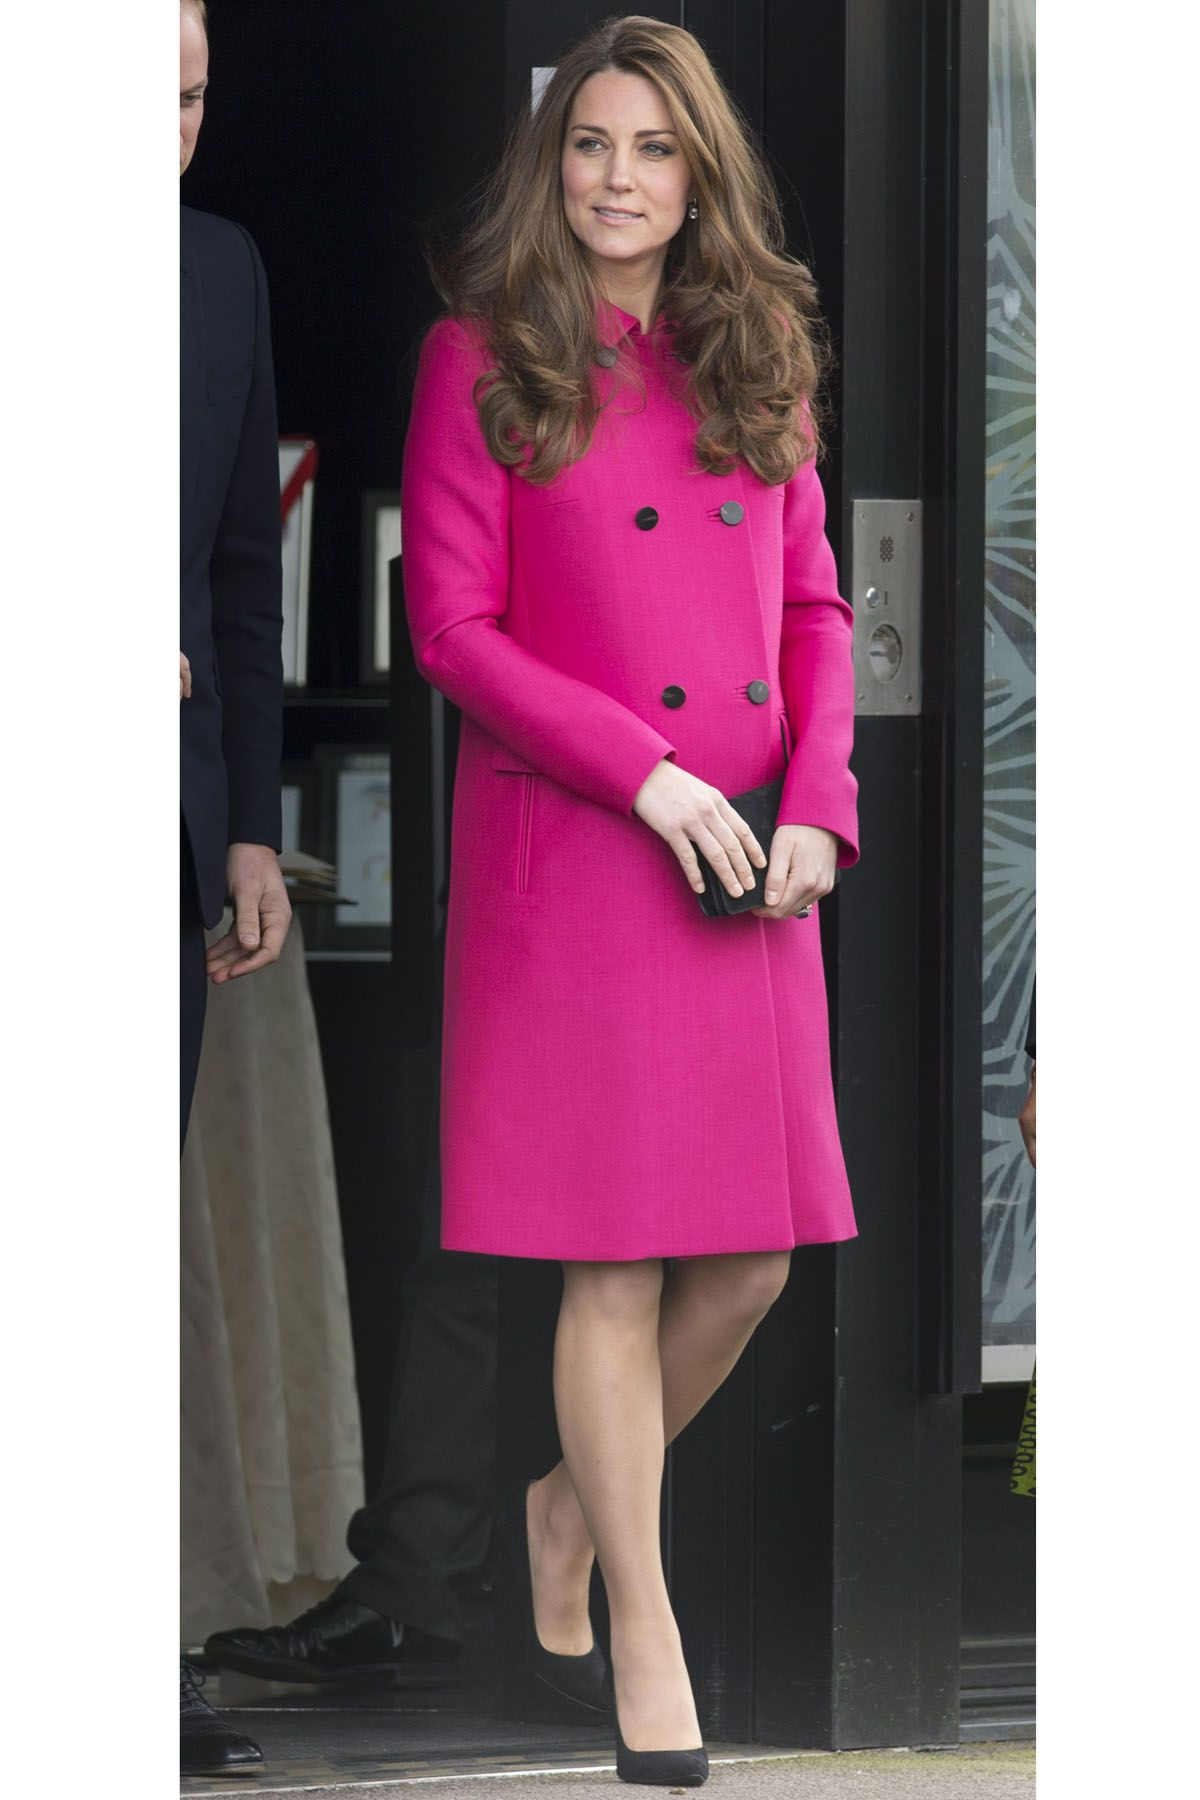 LONDON, ENGLAND - MARCH 27:  Catherine, Duchess of Cambridge visits The Stephen Lawrence Centre on March 27, 2015 in London, England. (Photo by Mark Cuthbert/UK Press via Getty Images)